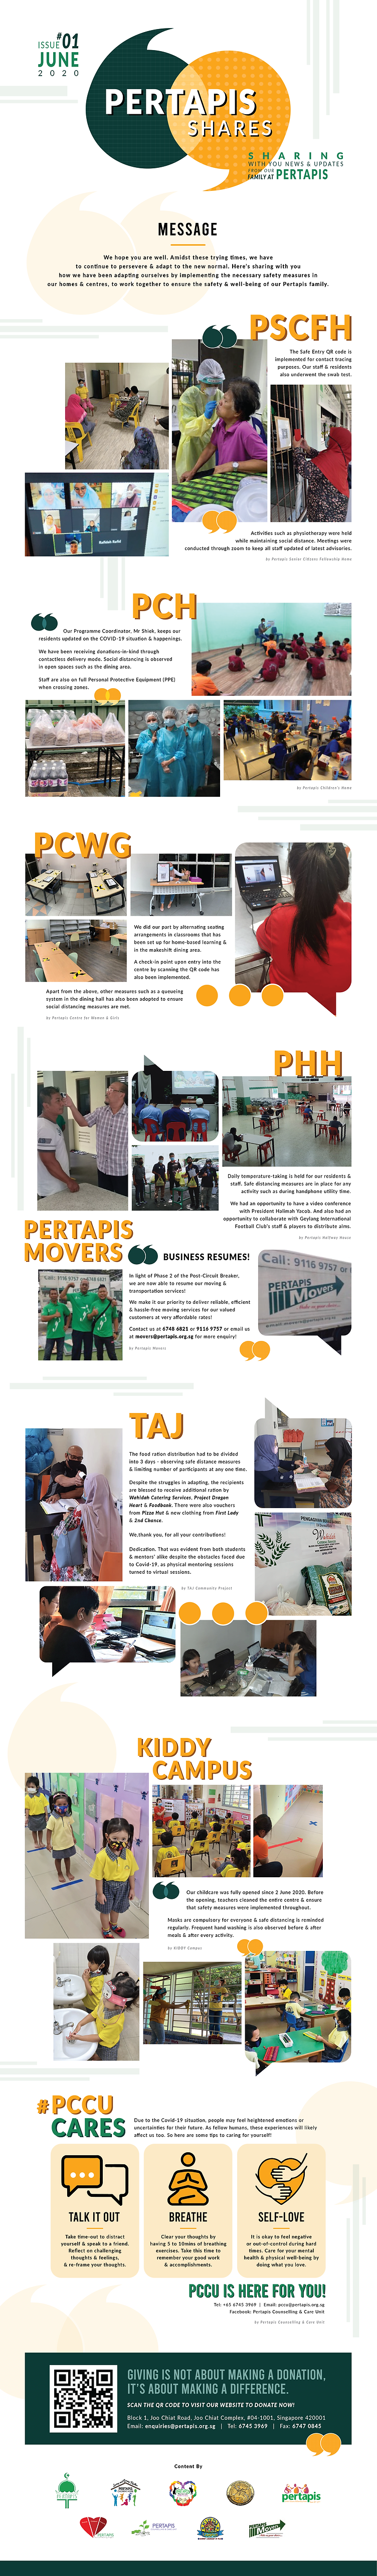 Pertapis_Enewsletter_2020Issue01_V6.png